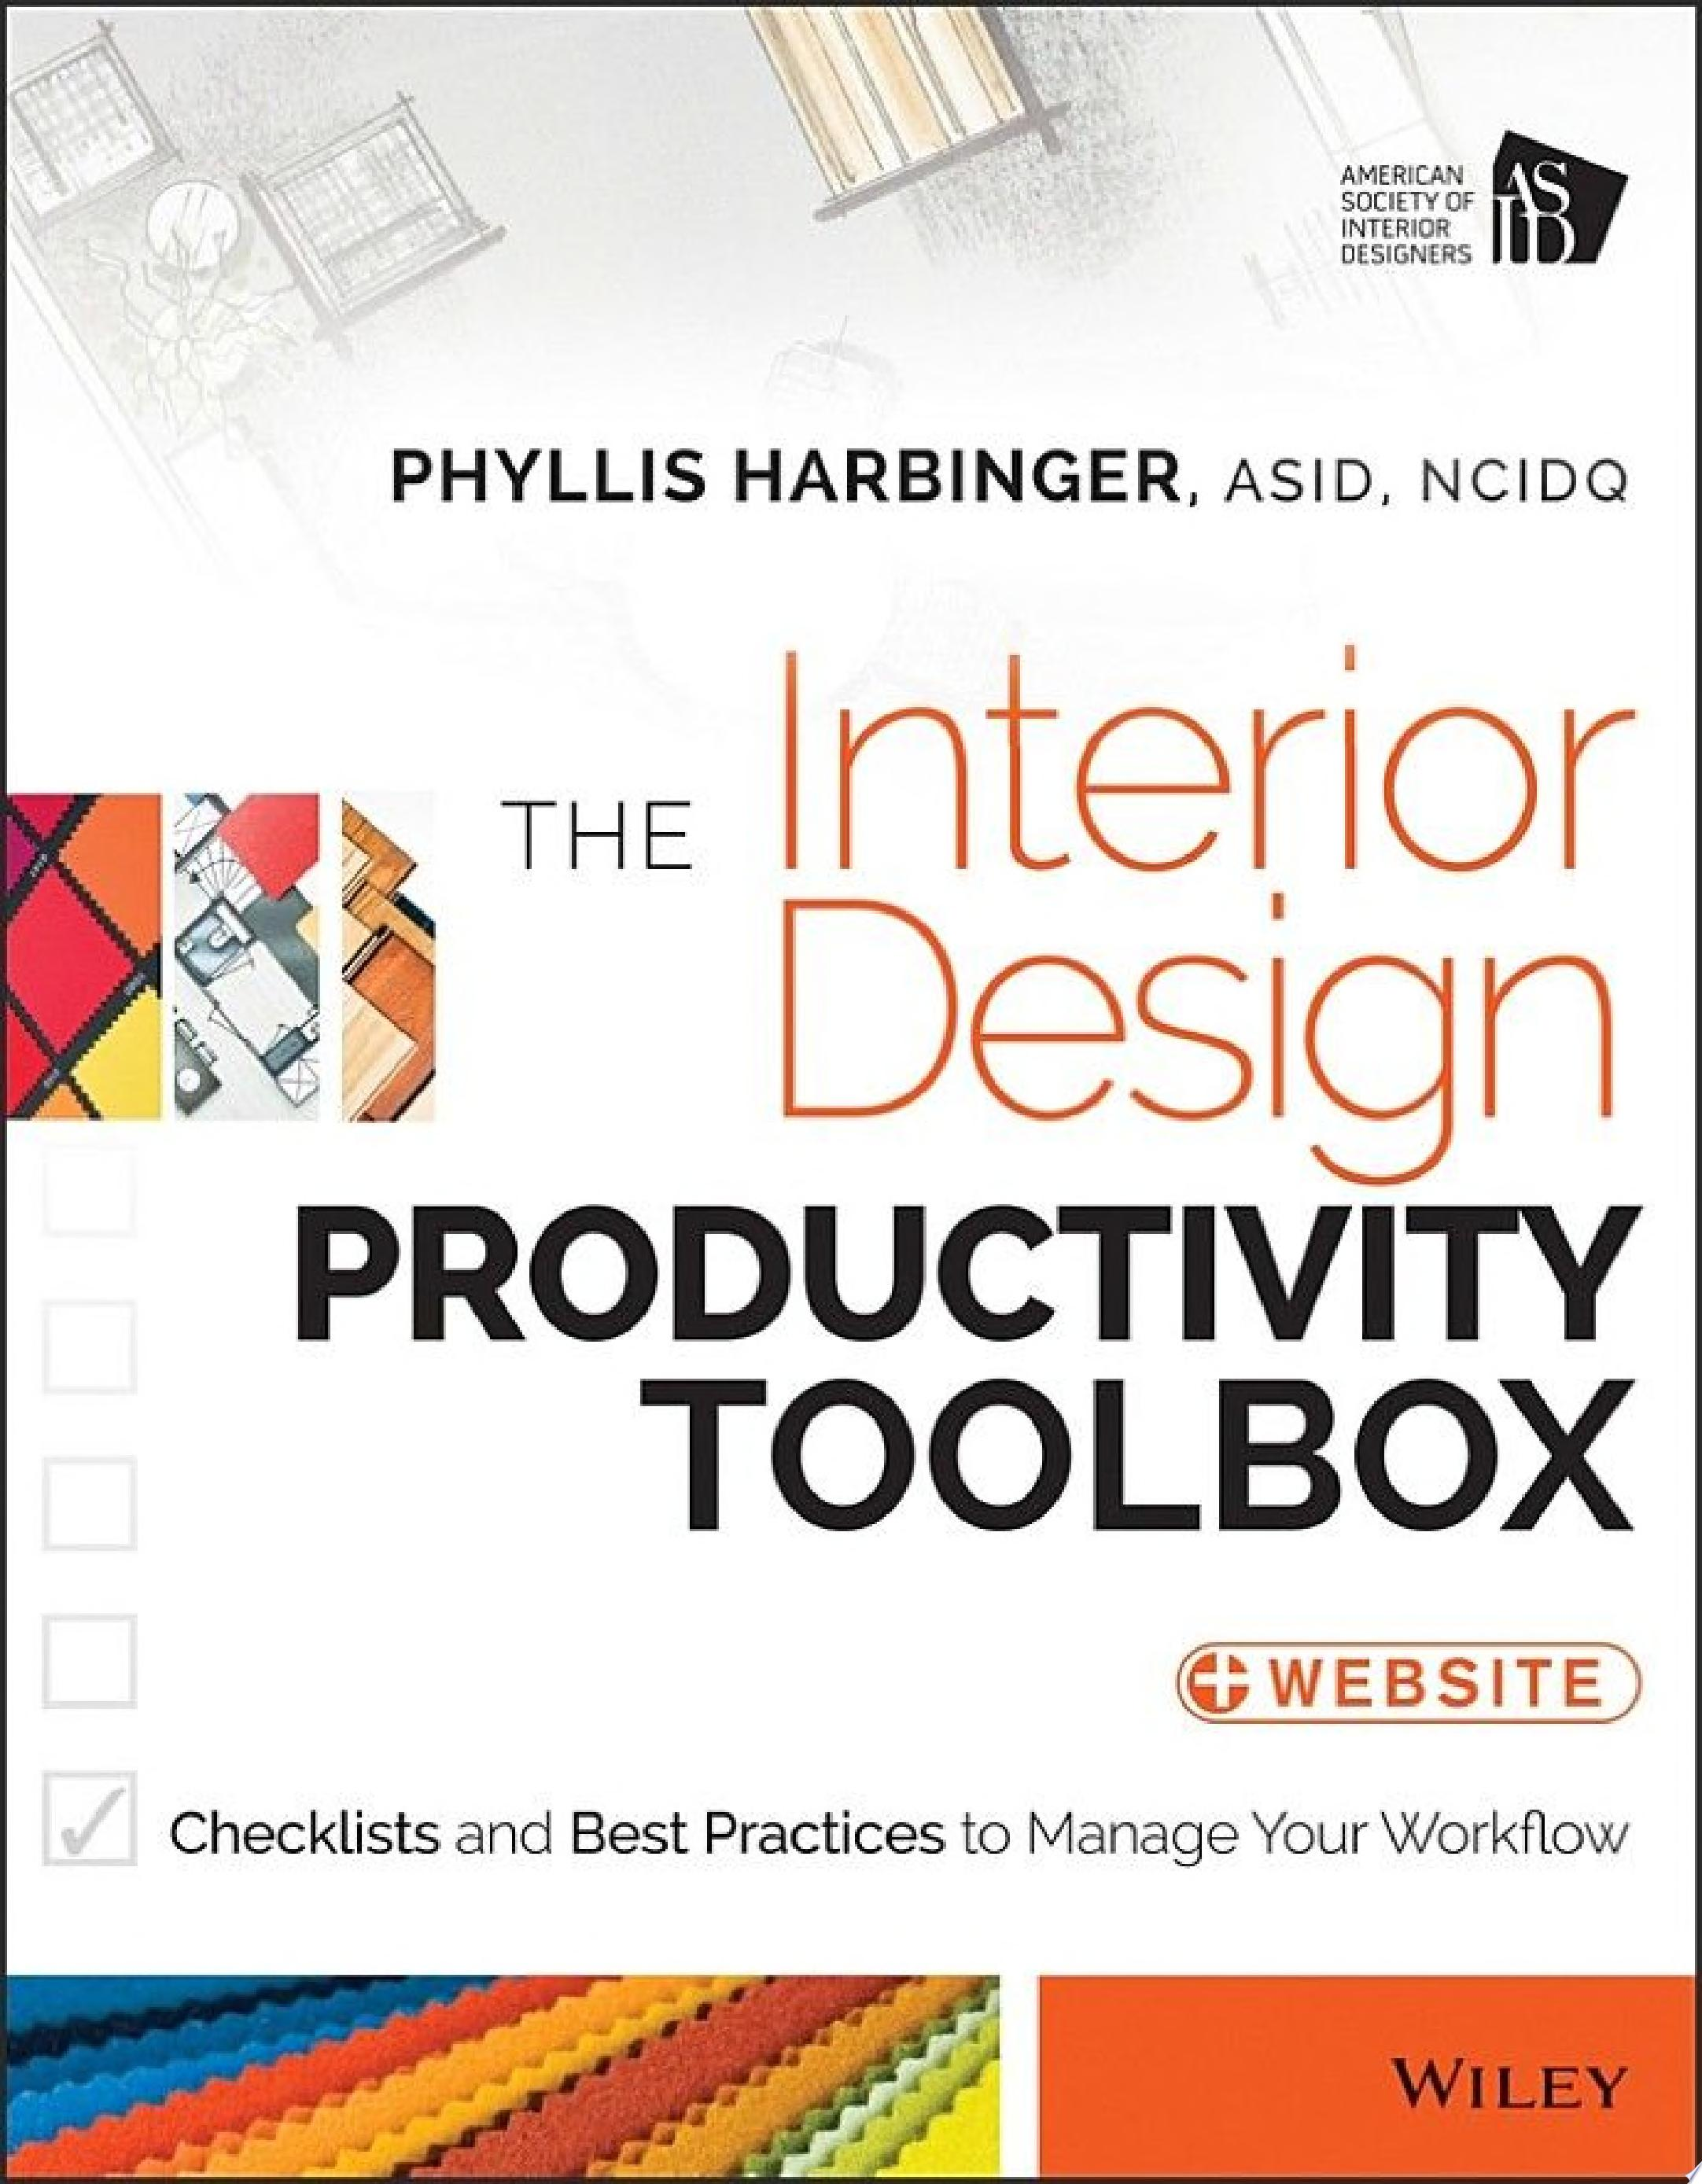 The Interior Design Productivity Toolbox